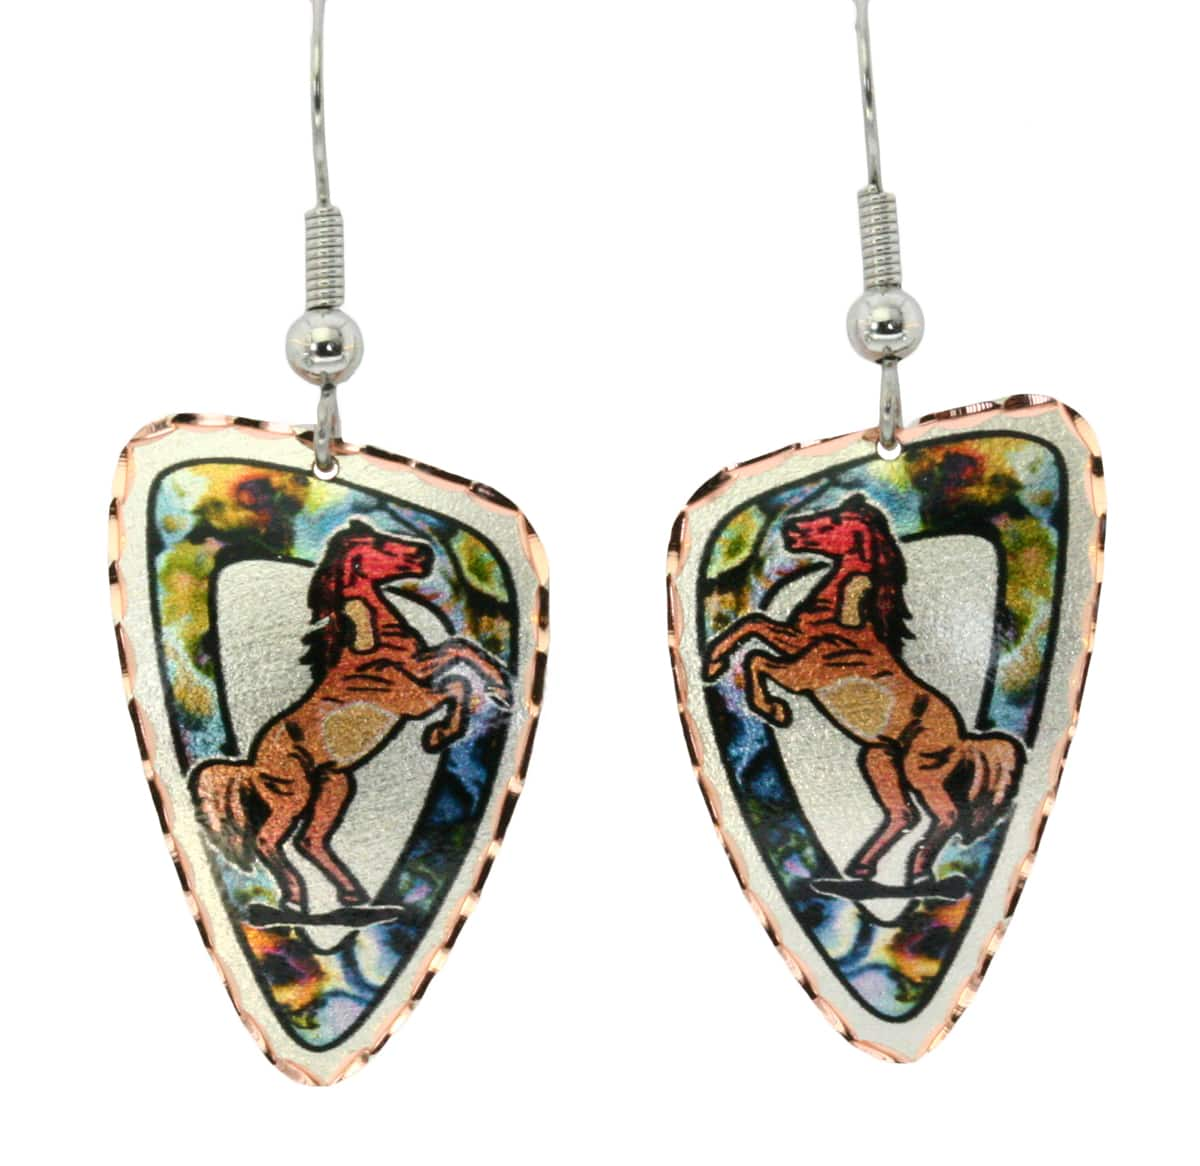 Painted horse earrings with colorful background ideal for a special occasion or anytime